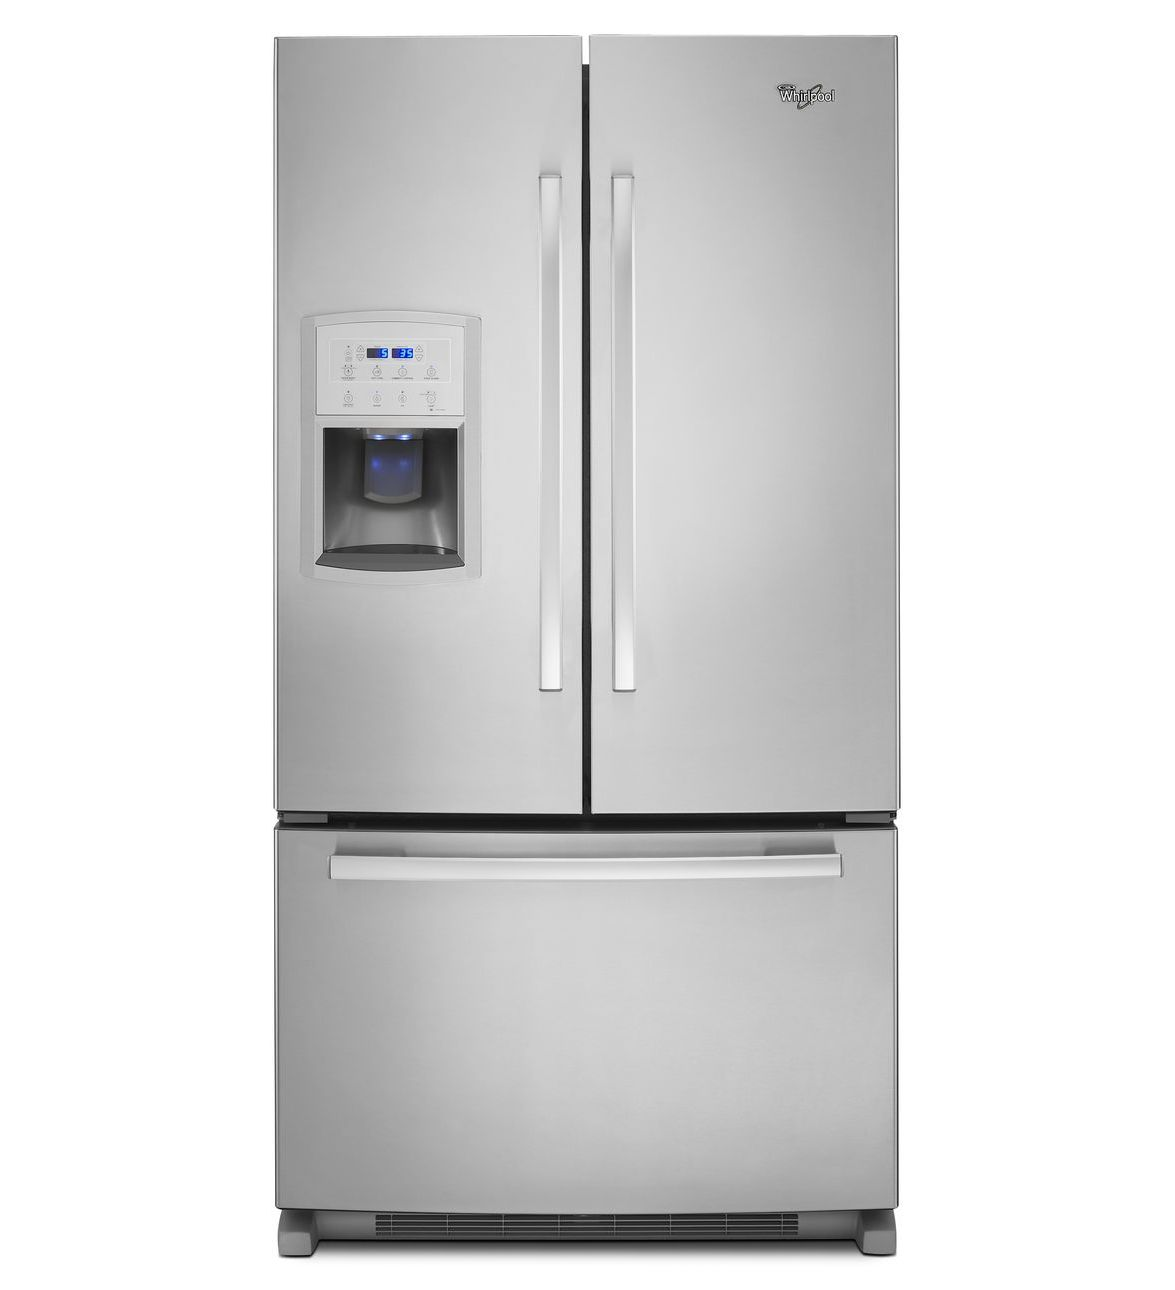 Le Meilleur Review Whirlpool Gold French Door Refrigerator Ce Mois Ci